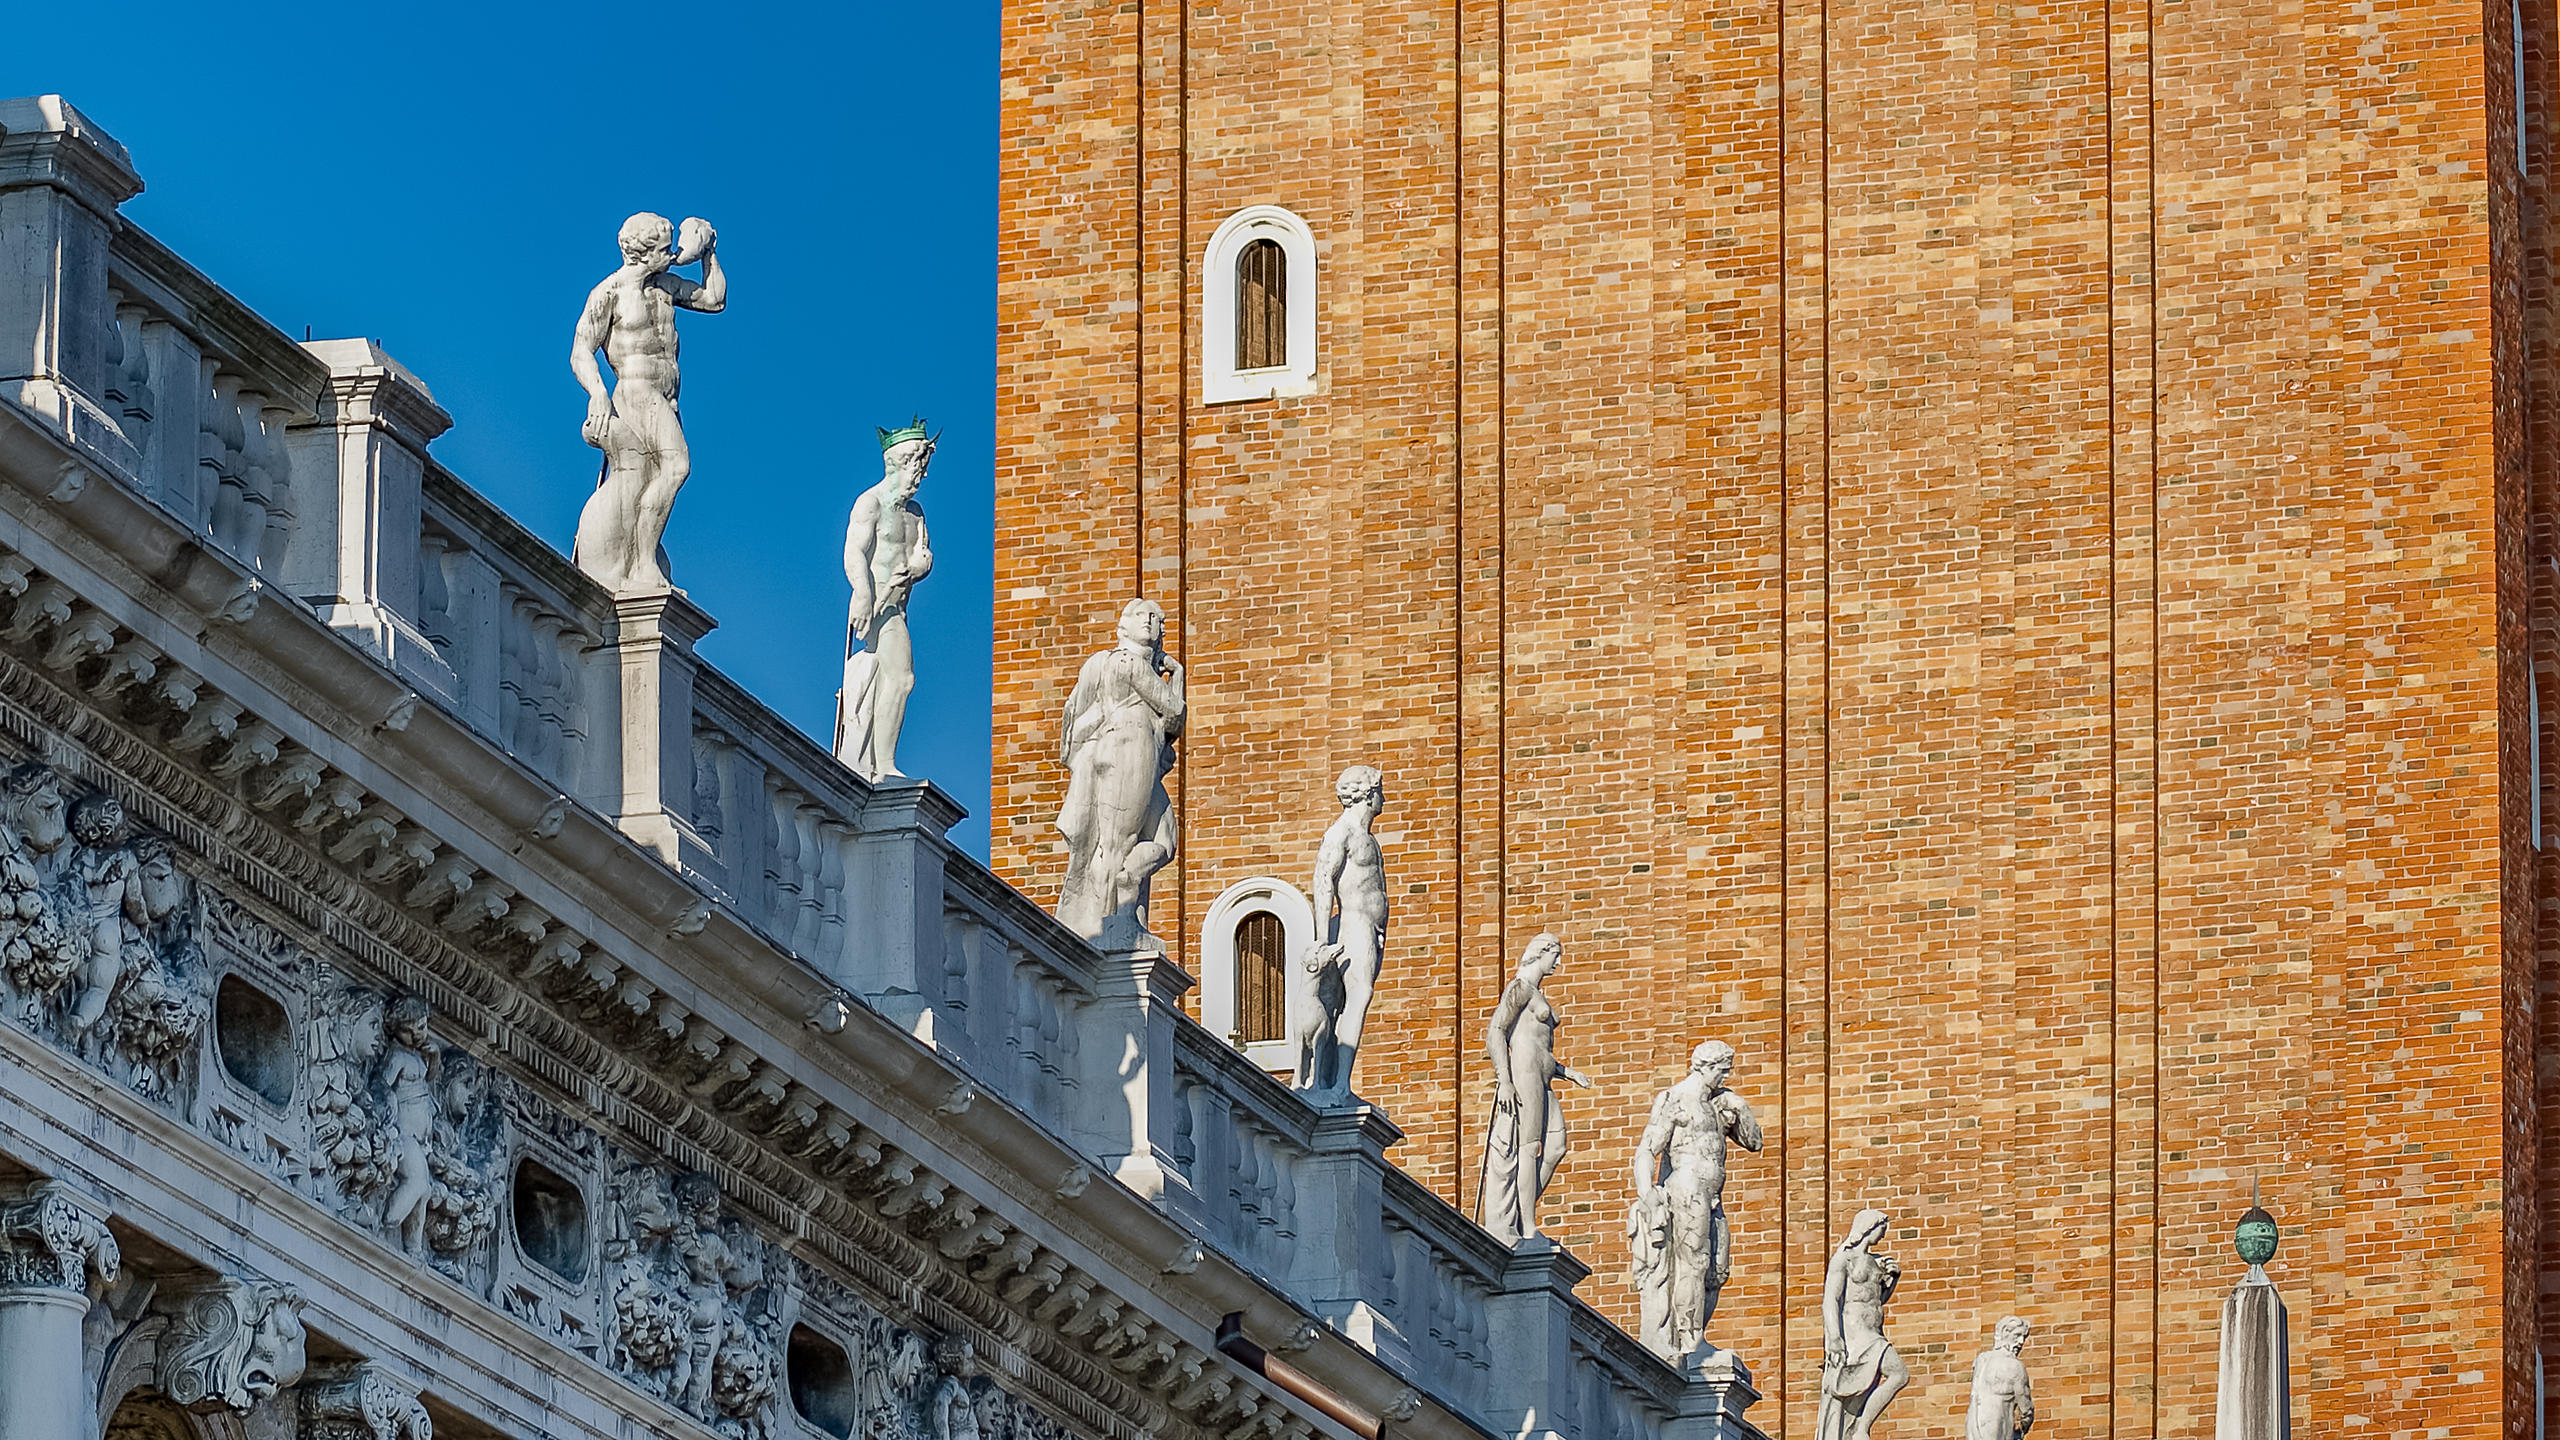 Detail of the Biblioteca Nazionale Marciana and Campanile